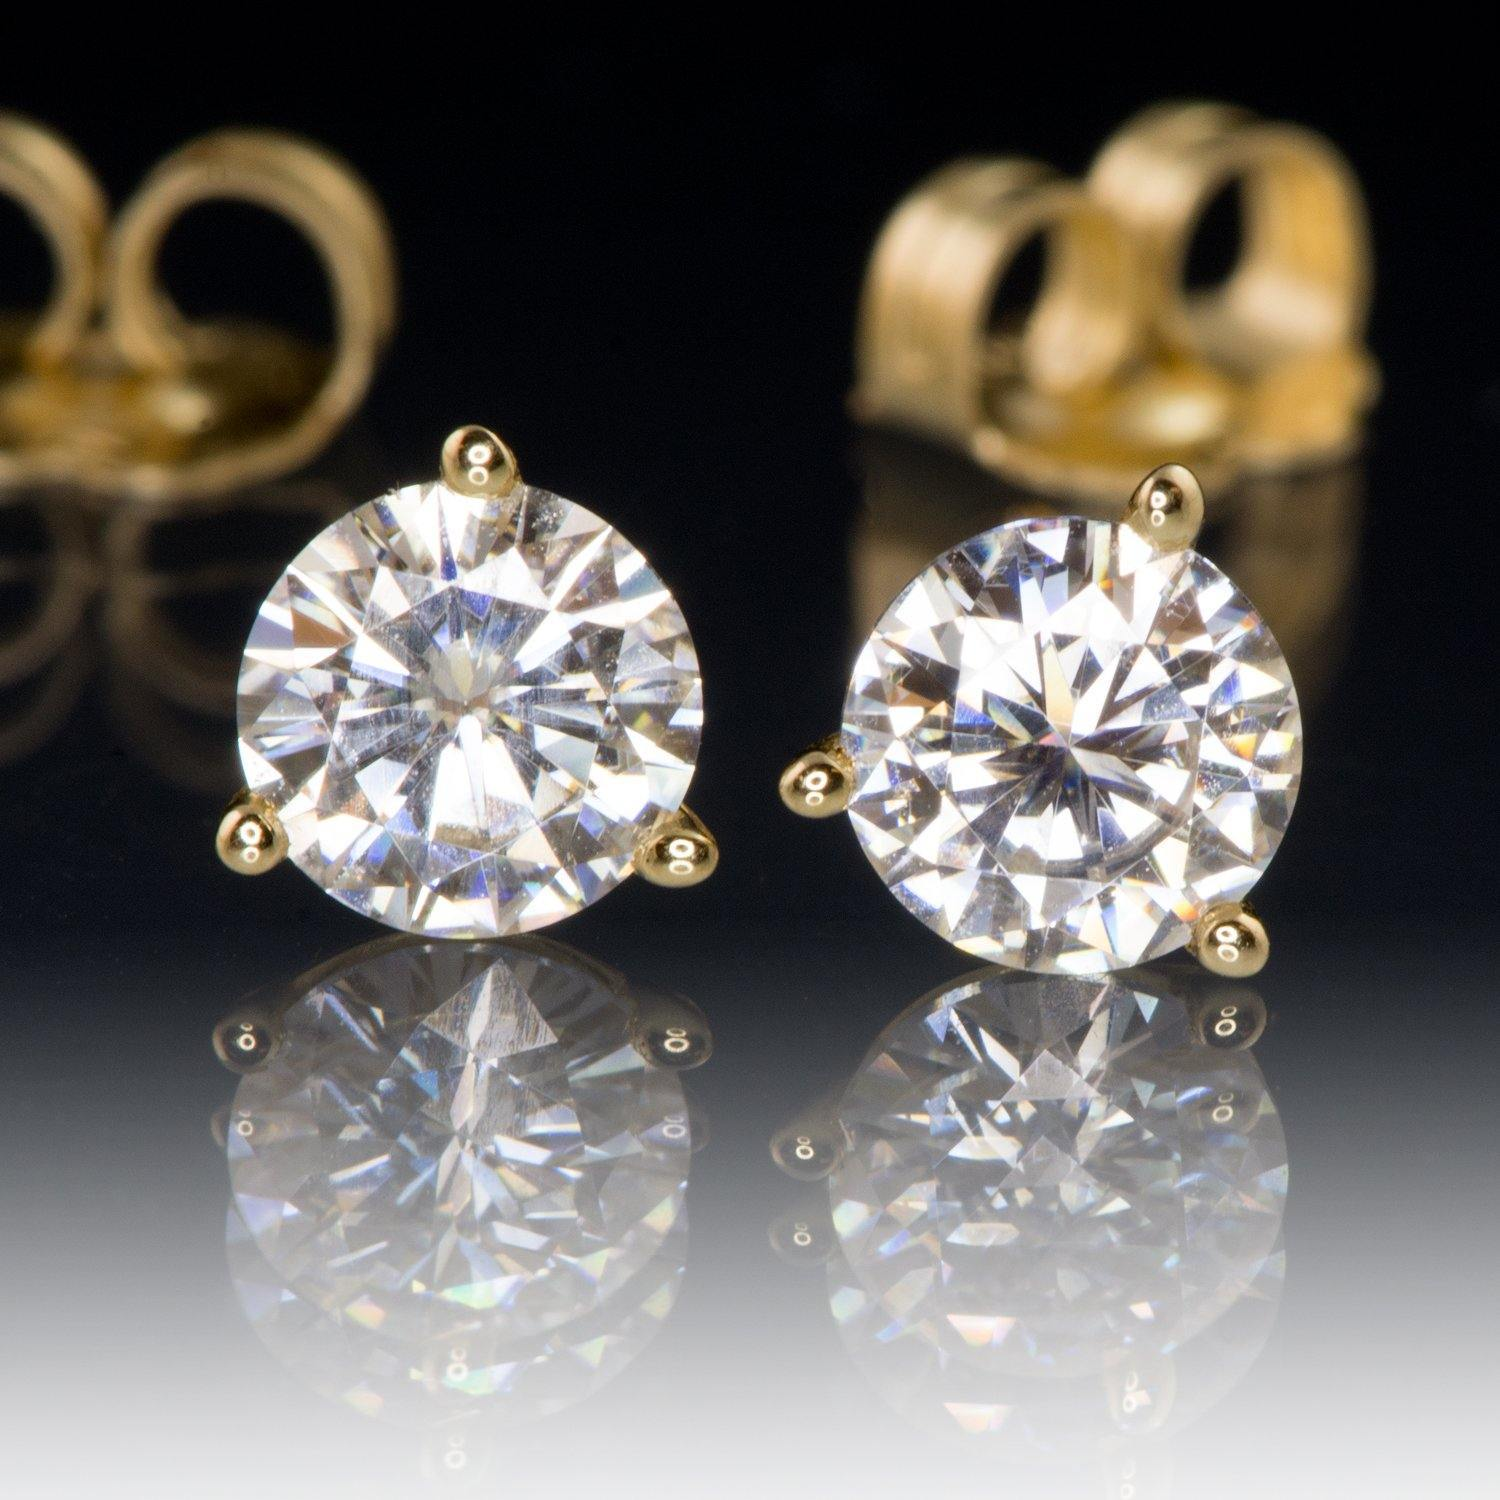 1CTW Forever Brilliant Moissanite Prong Stud Earrings in 14k Yellow Gold, Ready to Ship